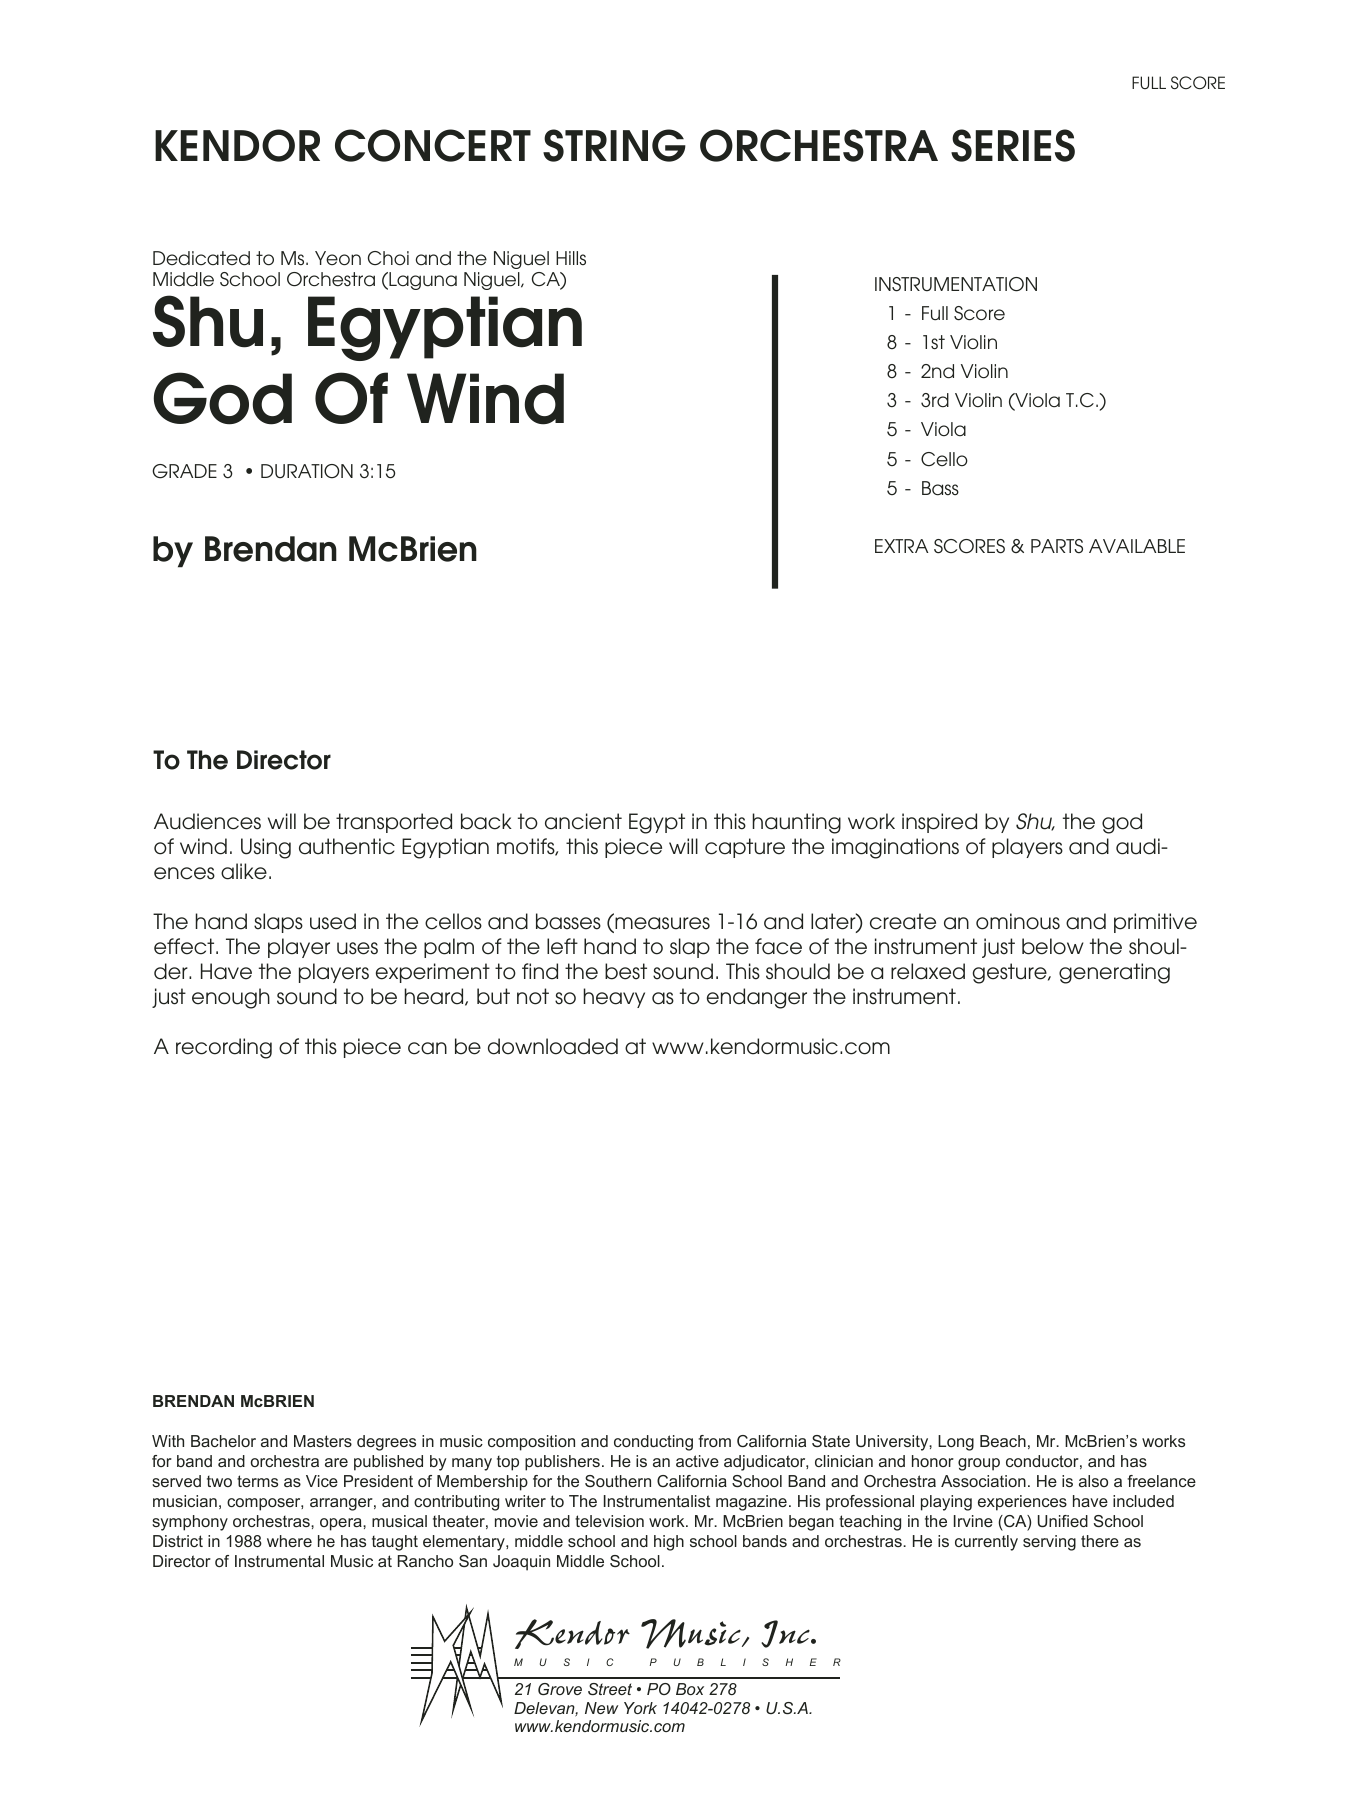 Shu, Egyptian God Of Wind (COMPLETE) sheet music for orchestra by Brendan McBrien